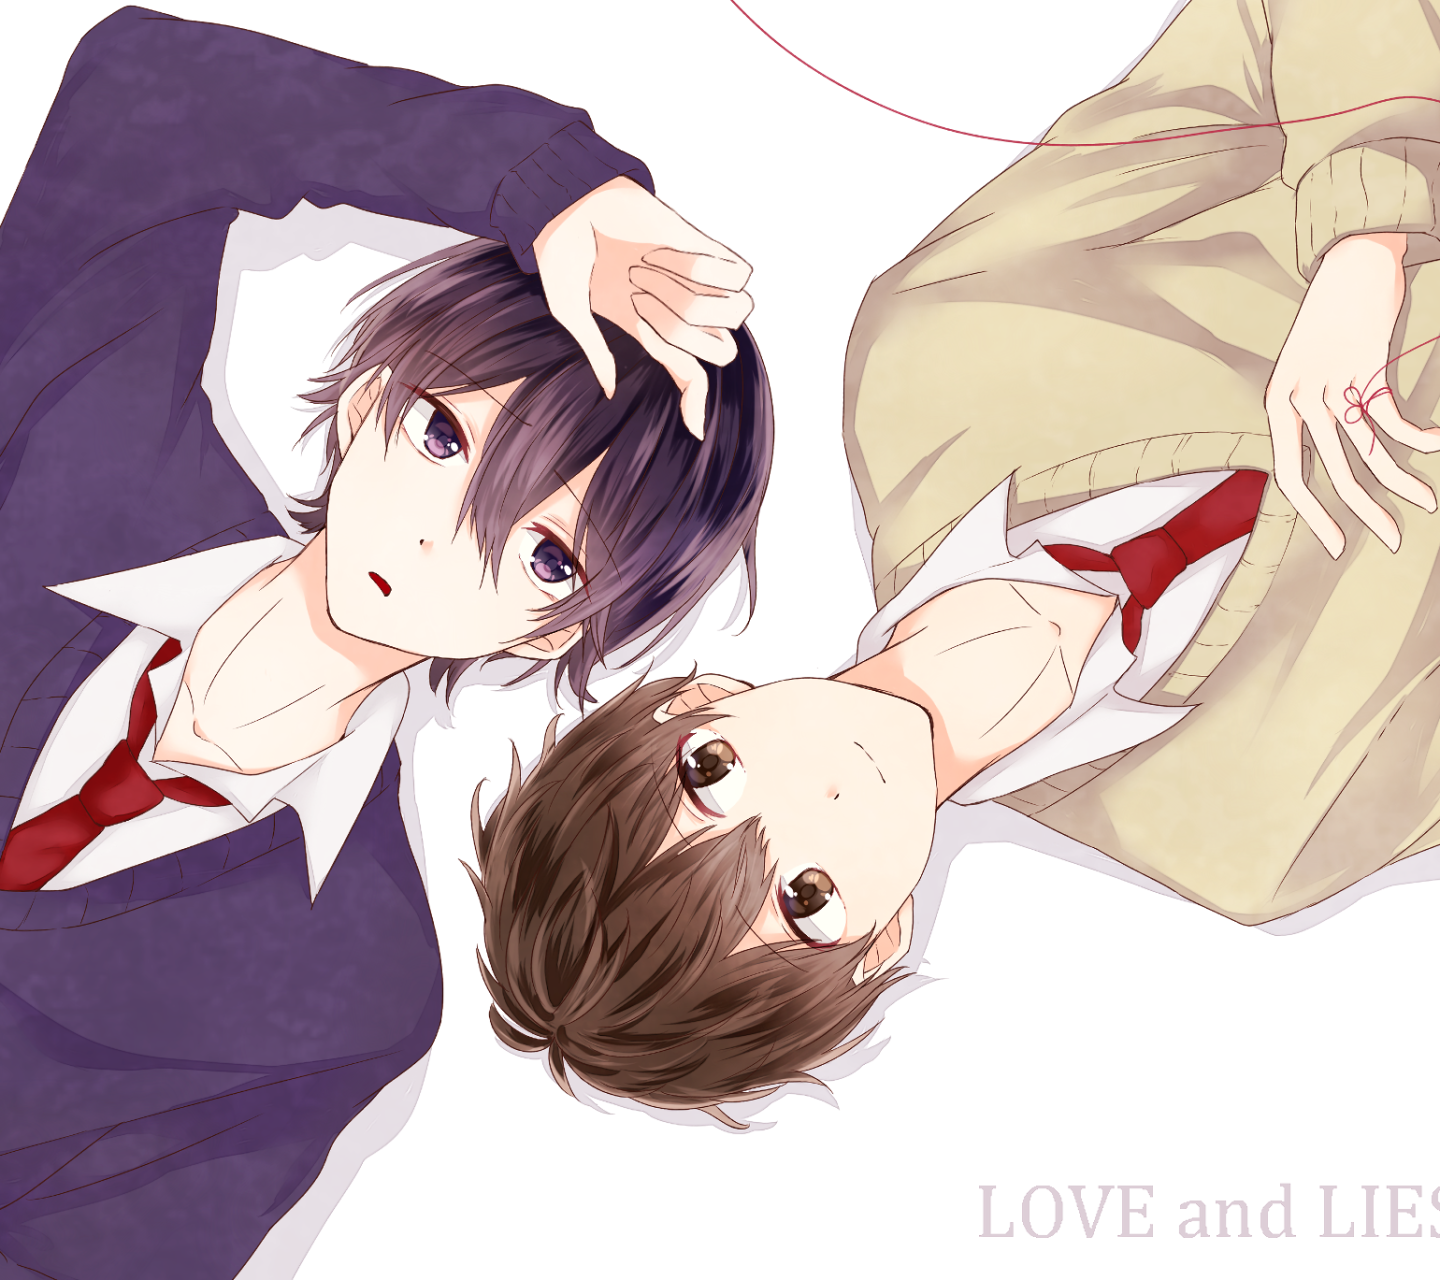 anime/love and lies (1440x1280) wallpaper id: 702812 - mobile abyss